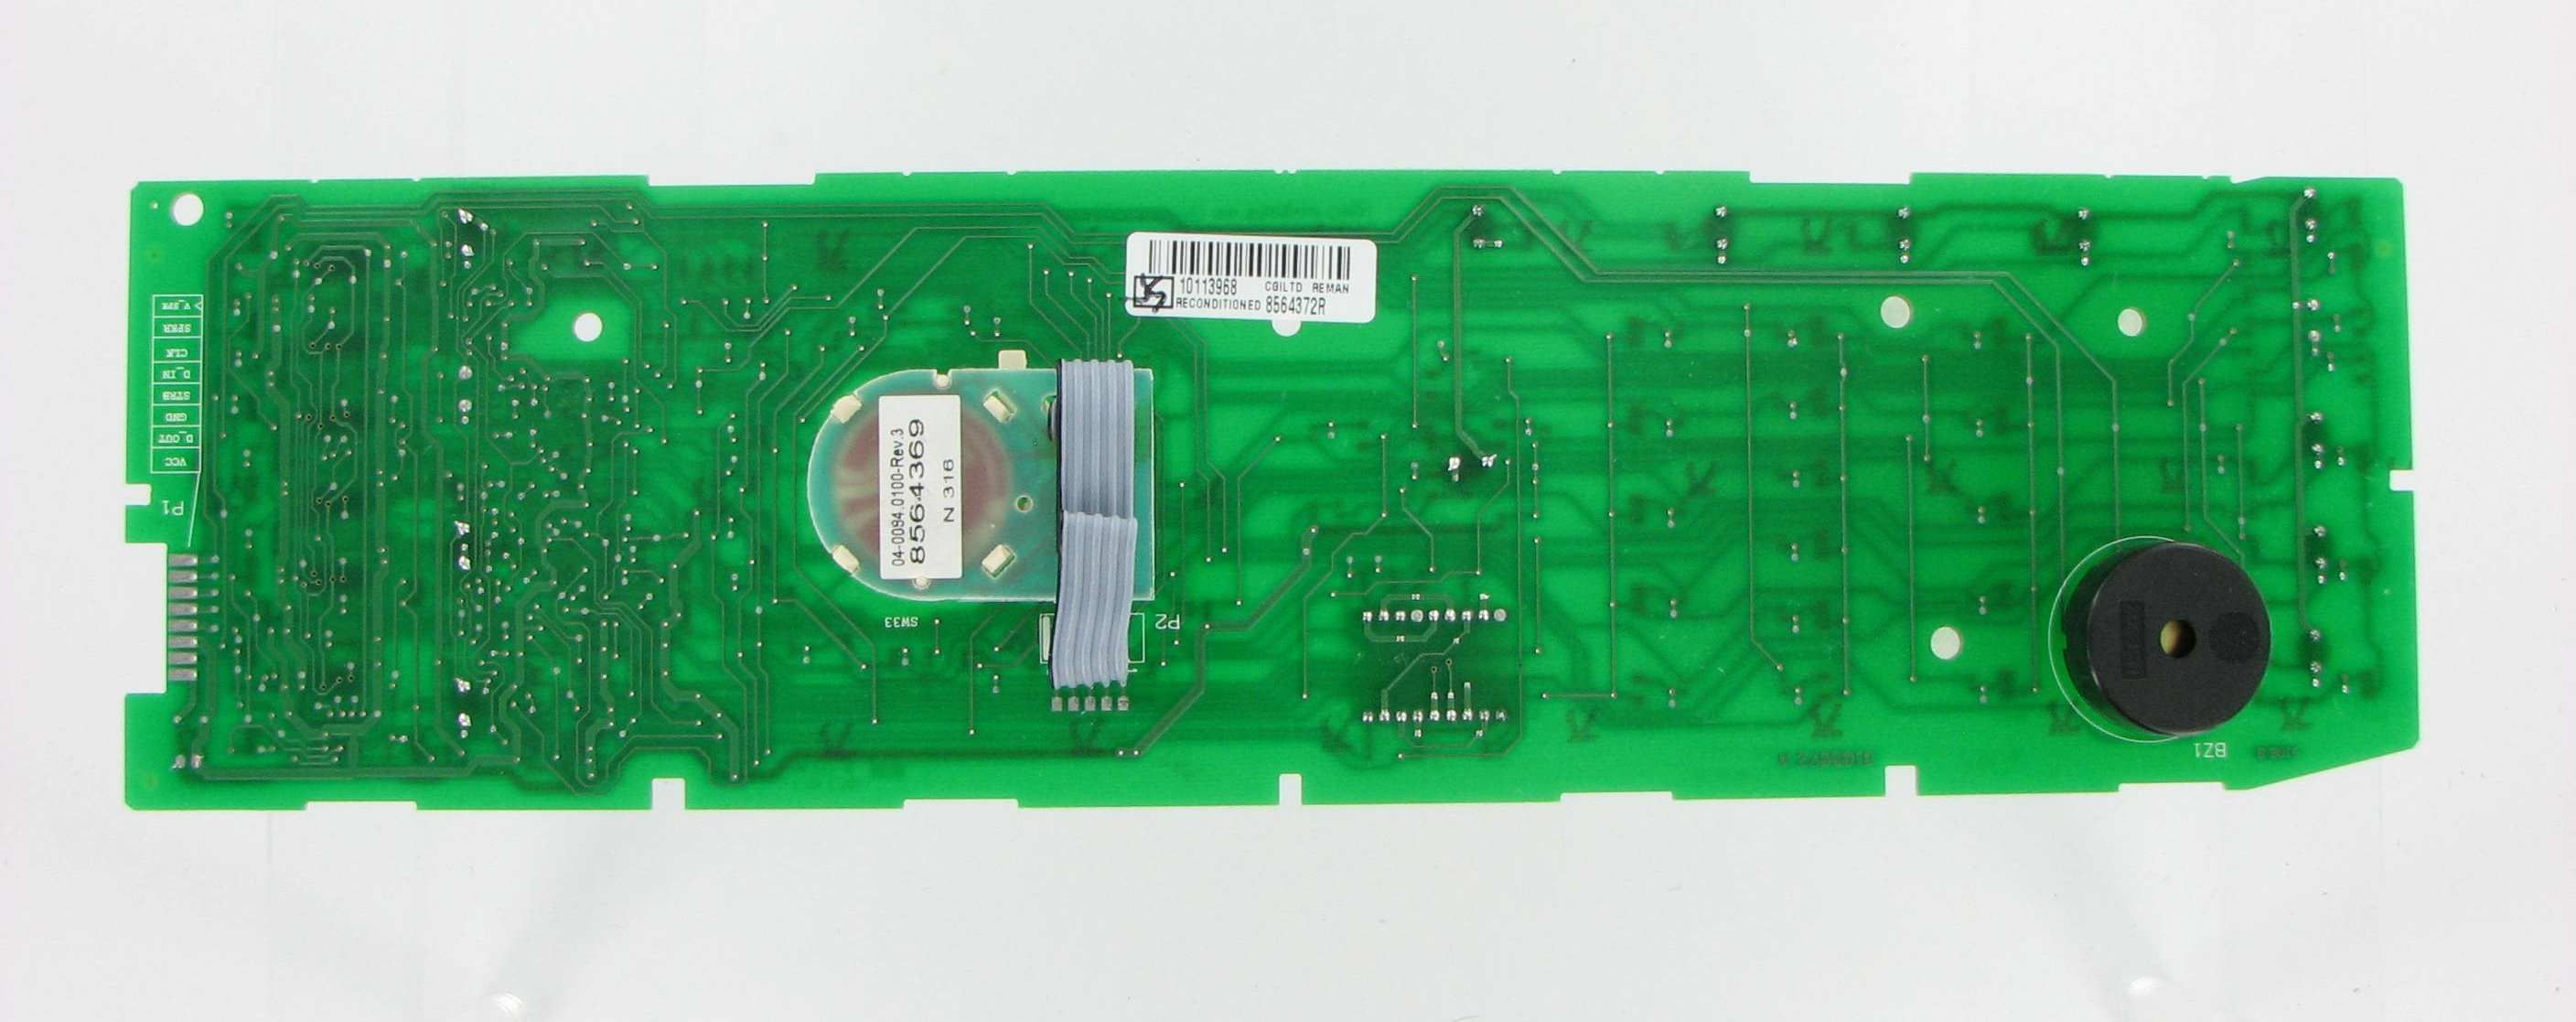 Whirlpool laundry washer control board repair service